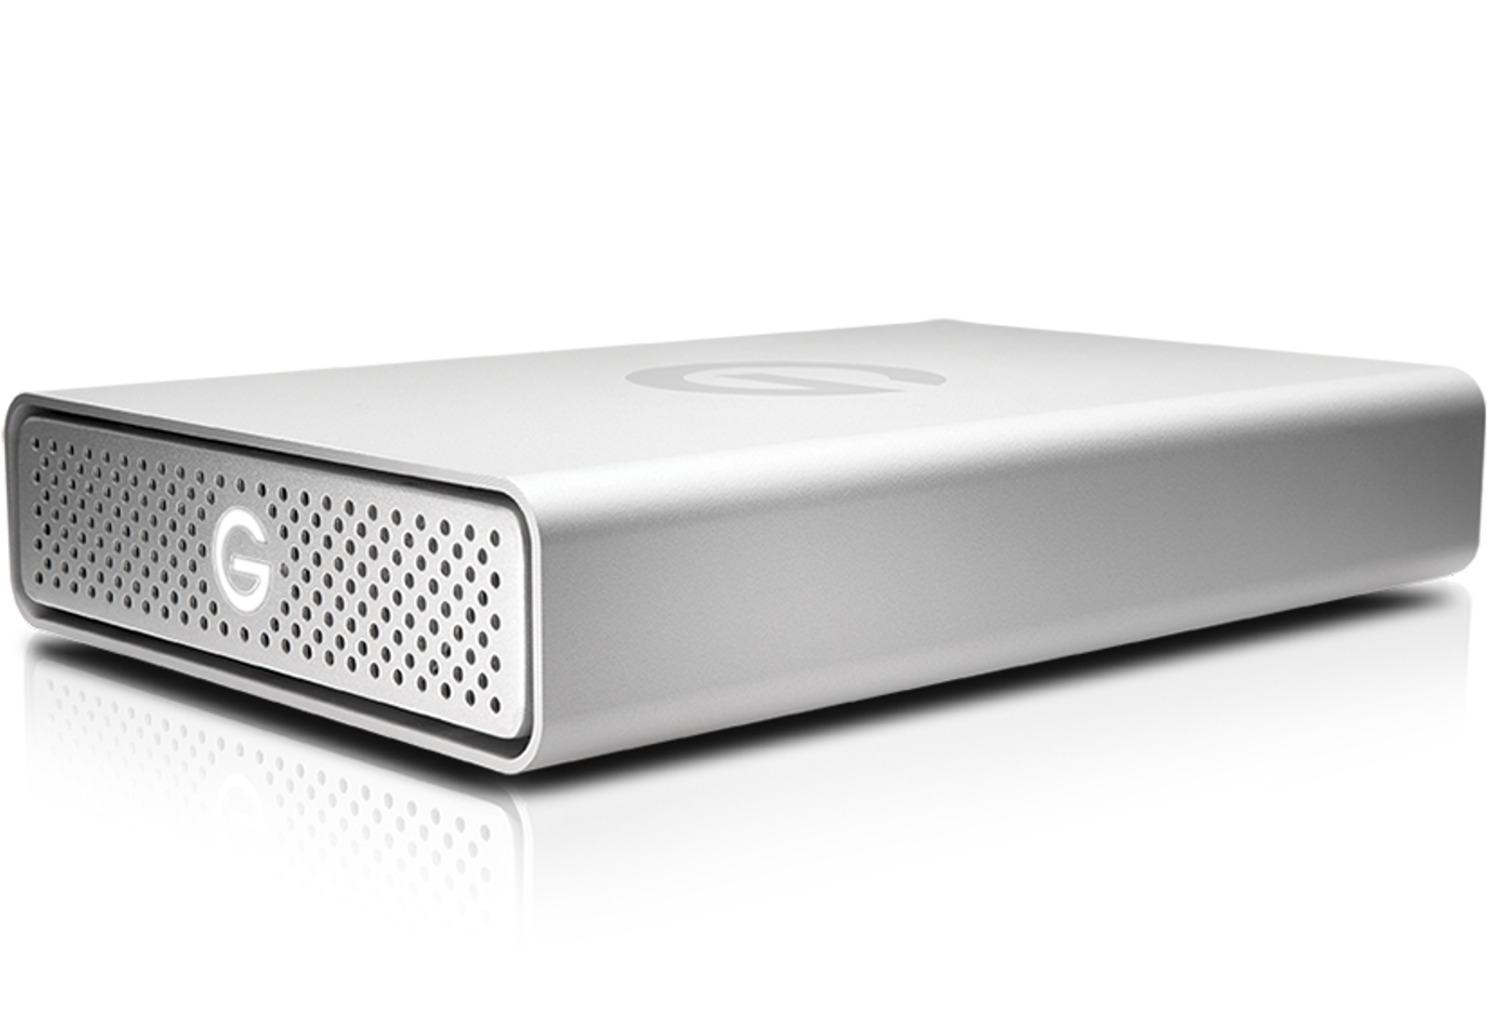 G-Technology G-DRIVE 10 TB USB 3.0 External Hard Drive by G-Technology